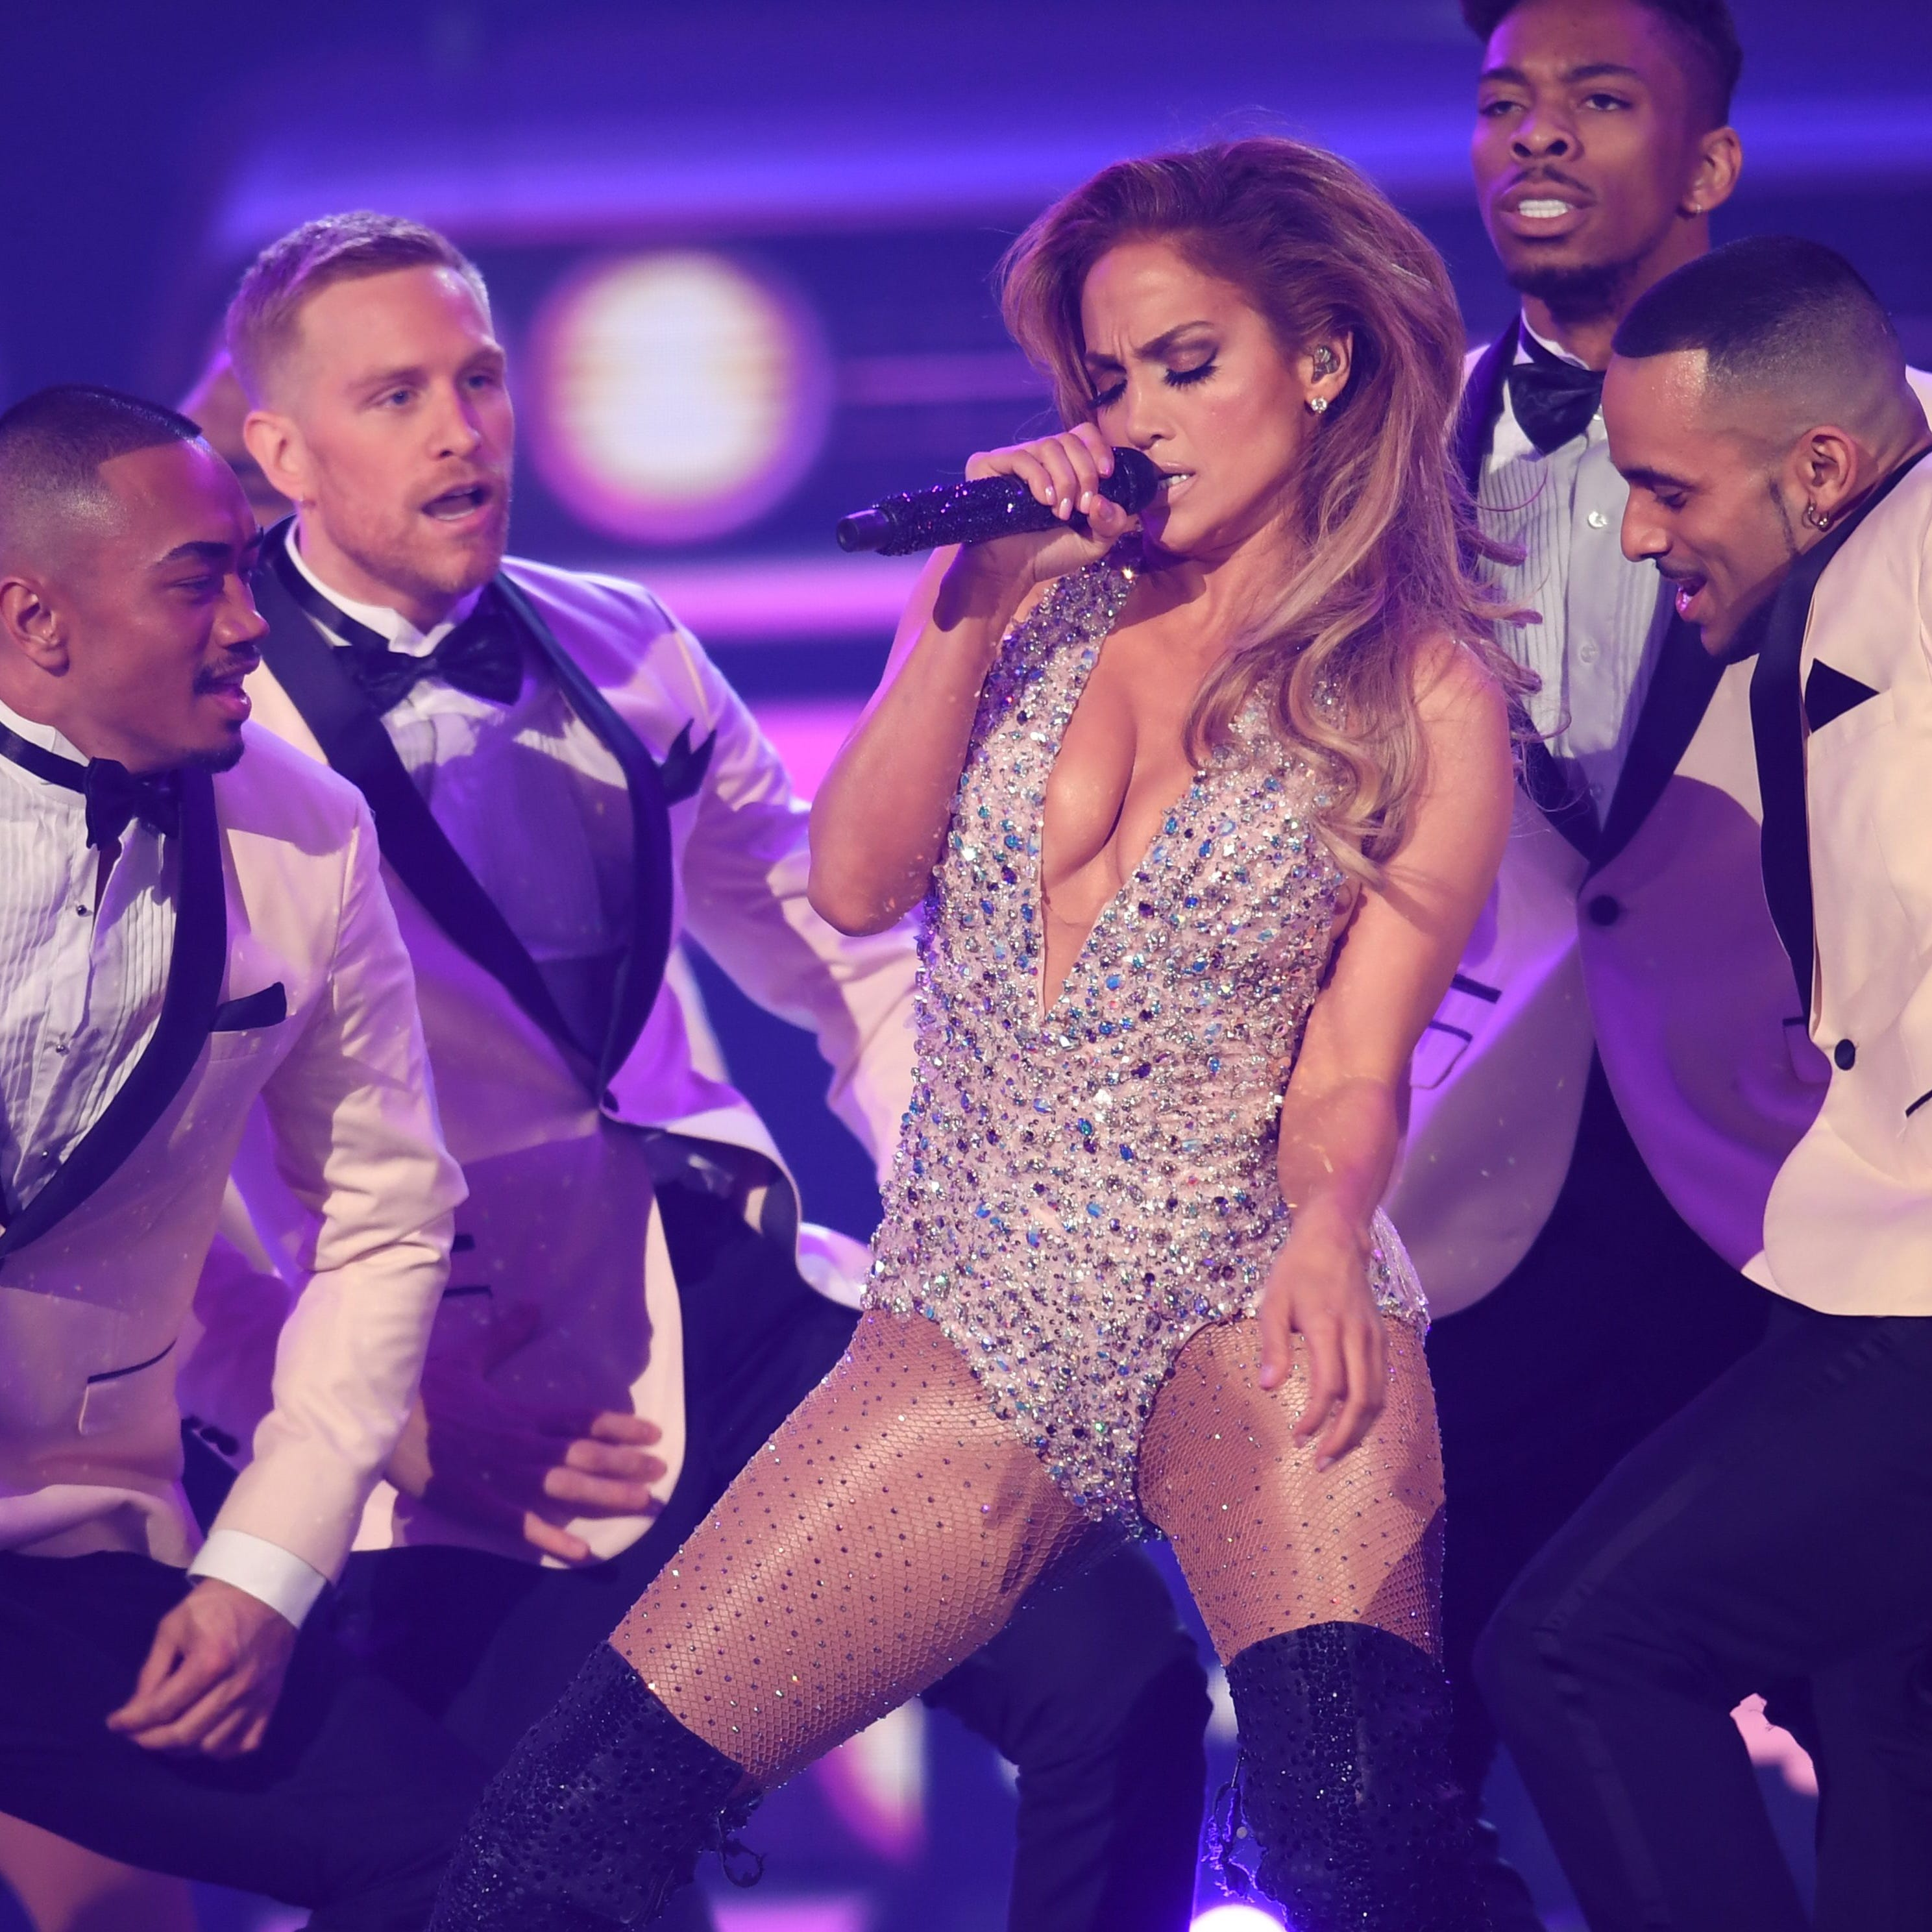 Jennifer Lopez is finally playing a headlining concert in Phoenix on the It's My Party Tour